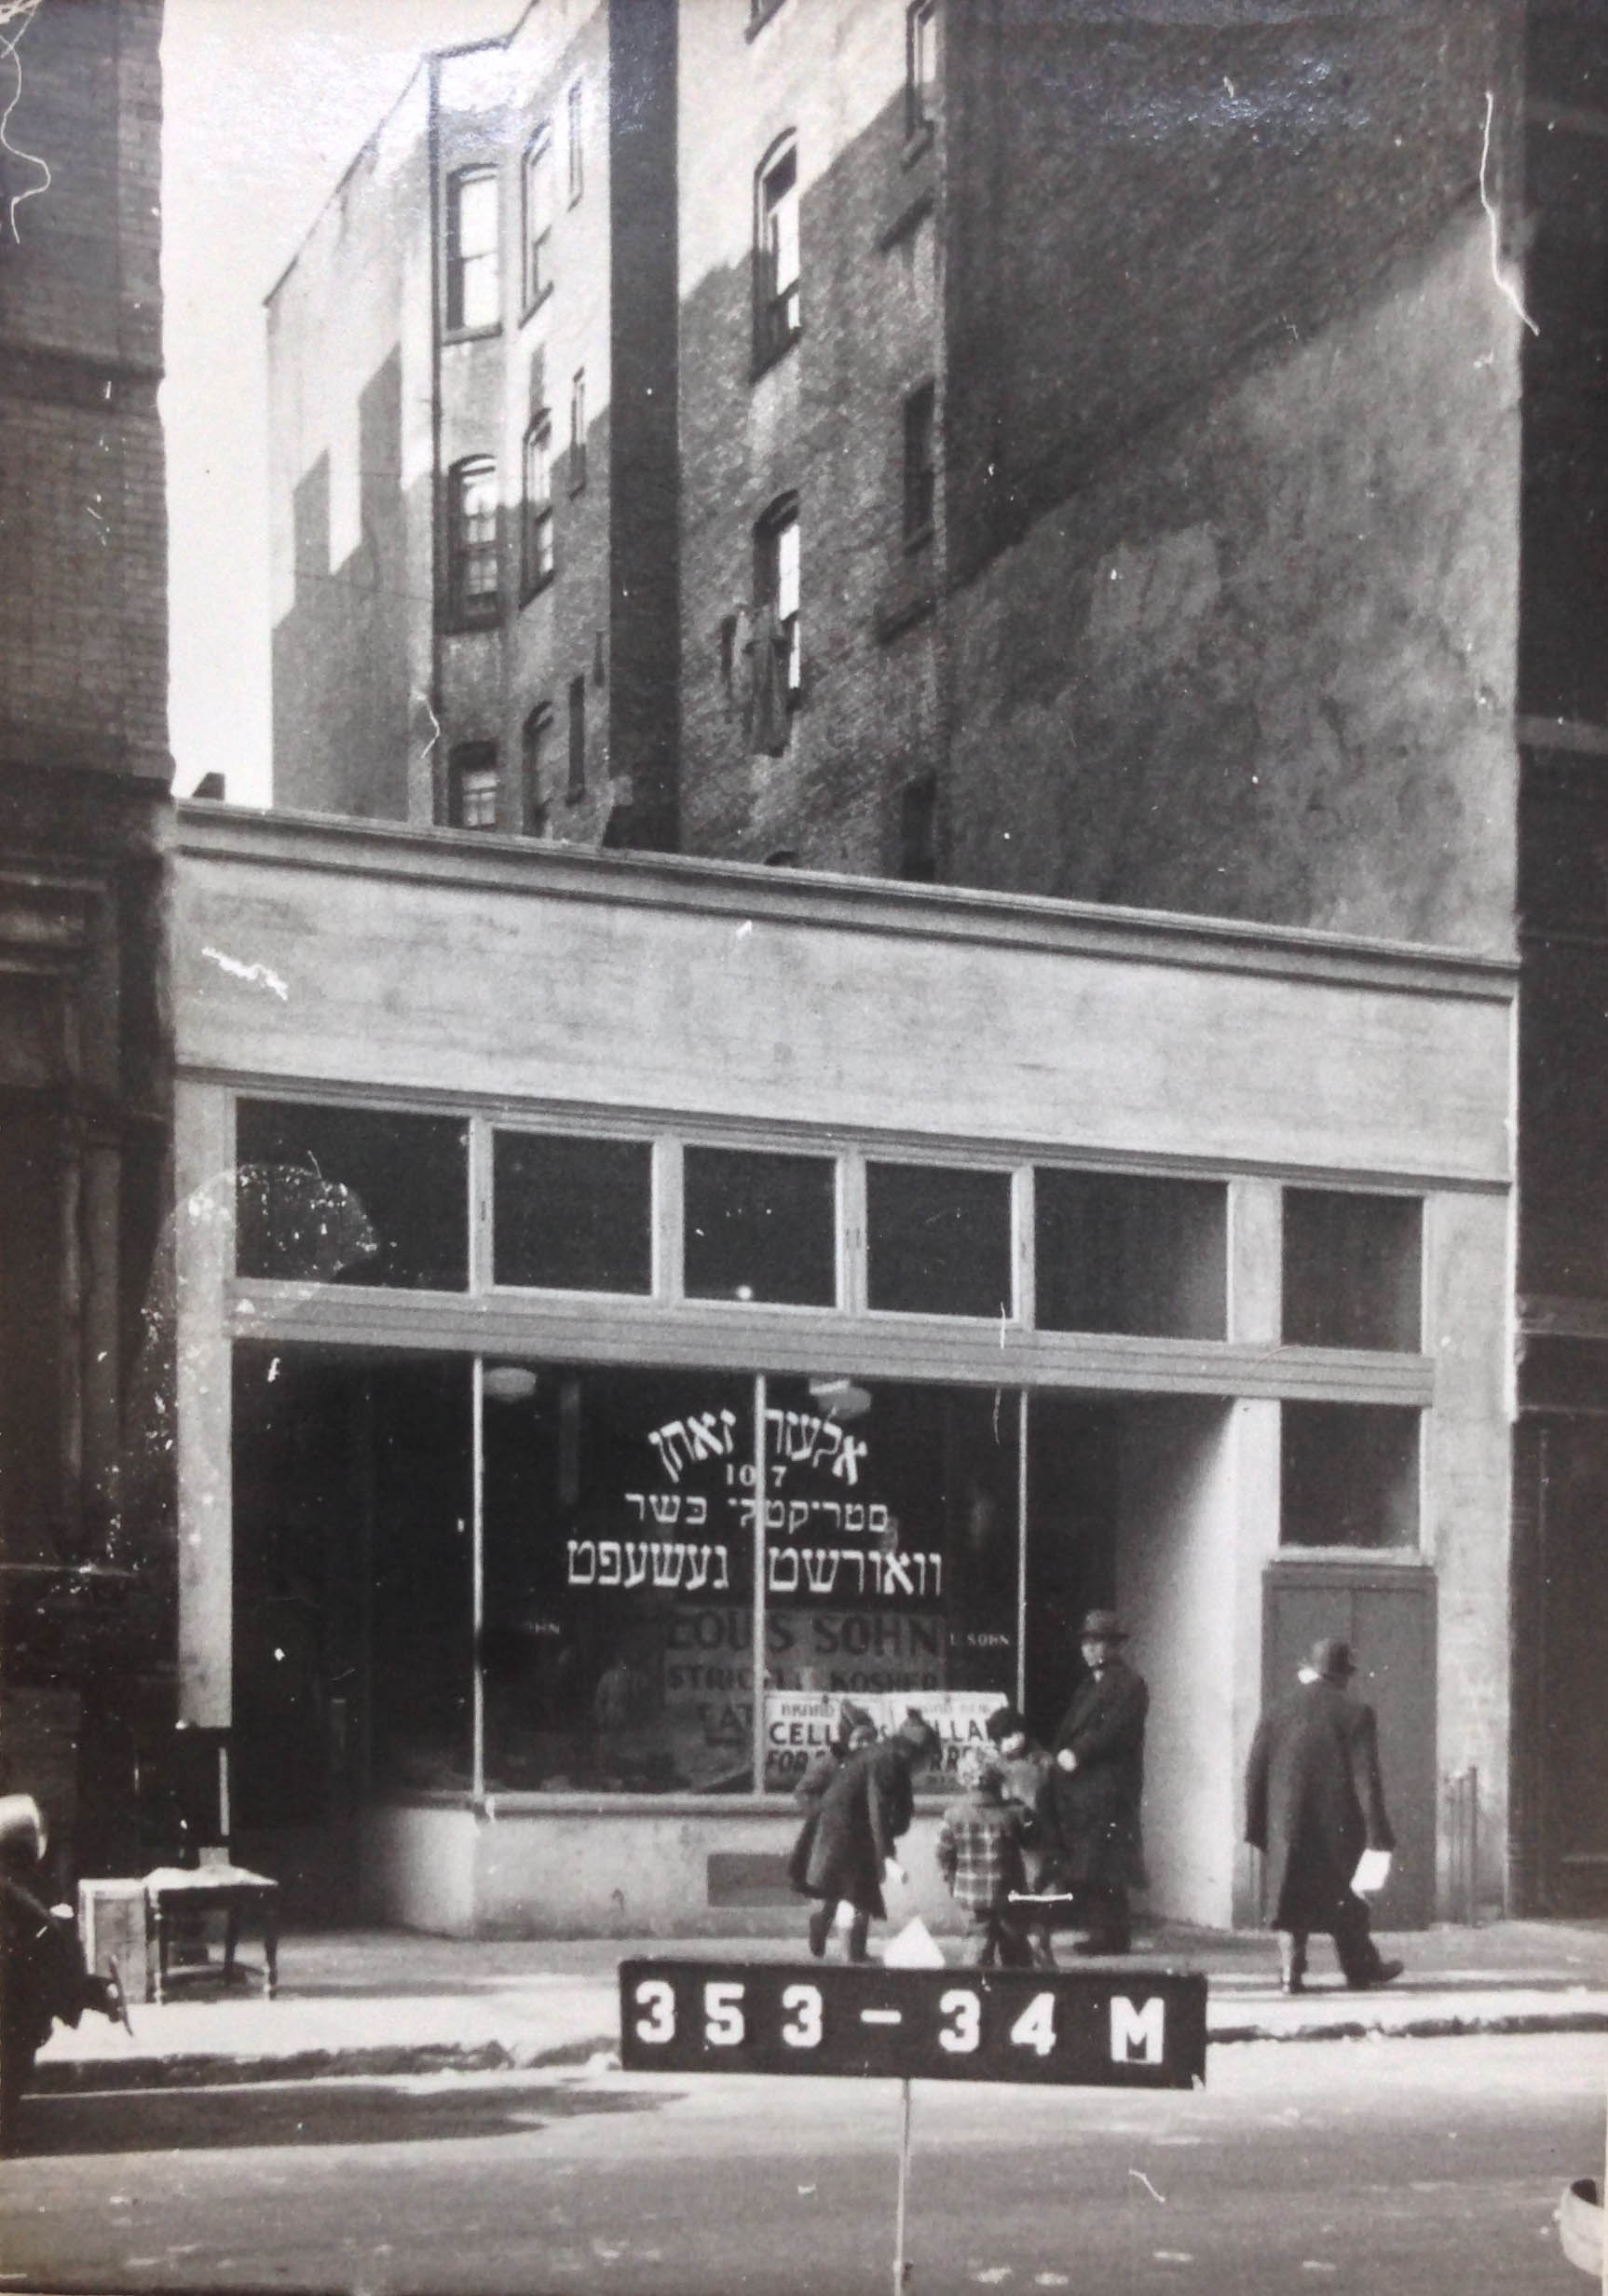 107 Norfolk Street, circa 1940. A view of Norfolk Street in the Lower East Side at a time when a lot of the residents were immigrant Jewish families from Eastern Europe. Beth Hamedrash Hagodol, one of the oldest Orthodox congregations in the United States, was just down the street.Department of Finance Collection, NYC Municipal Archives.